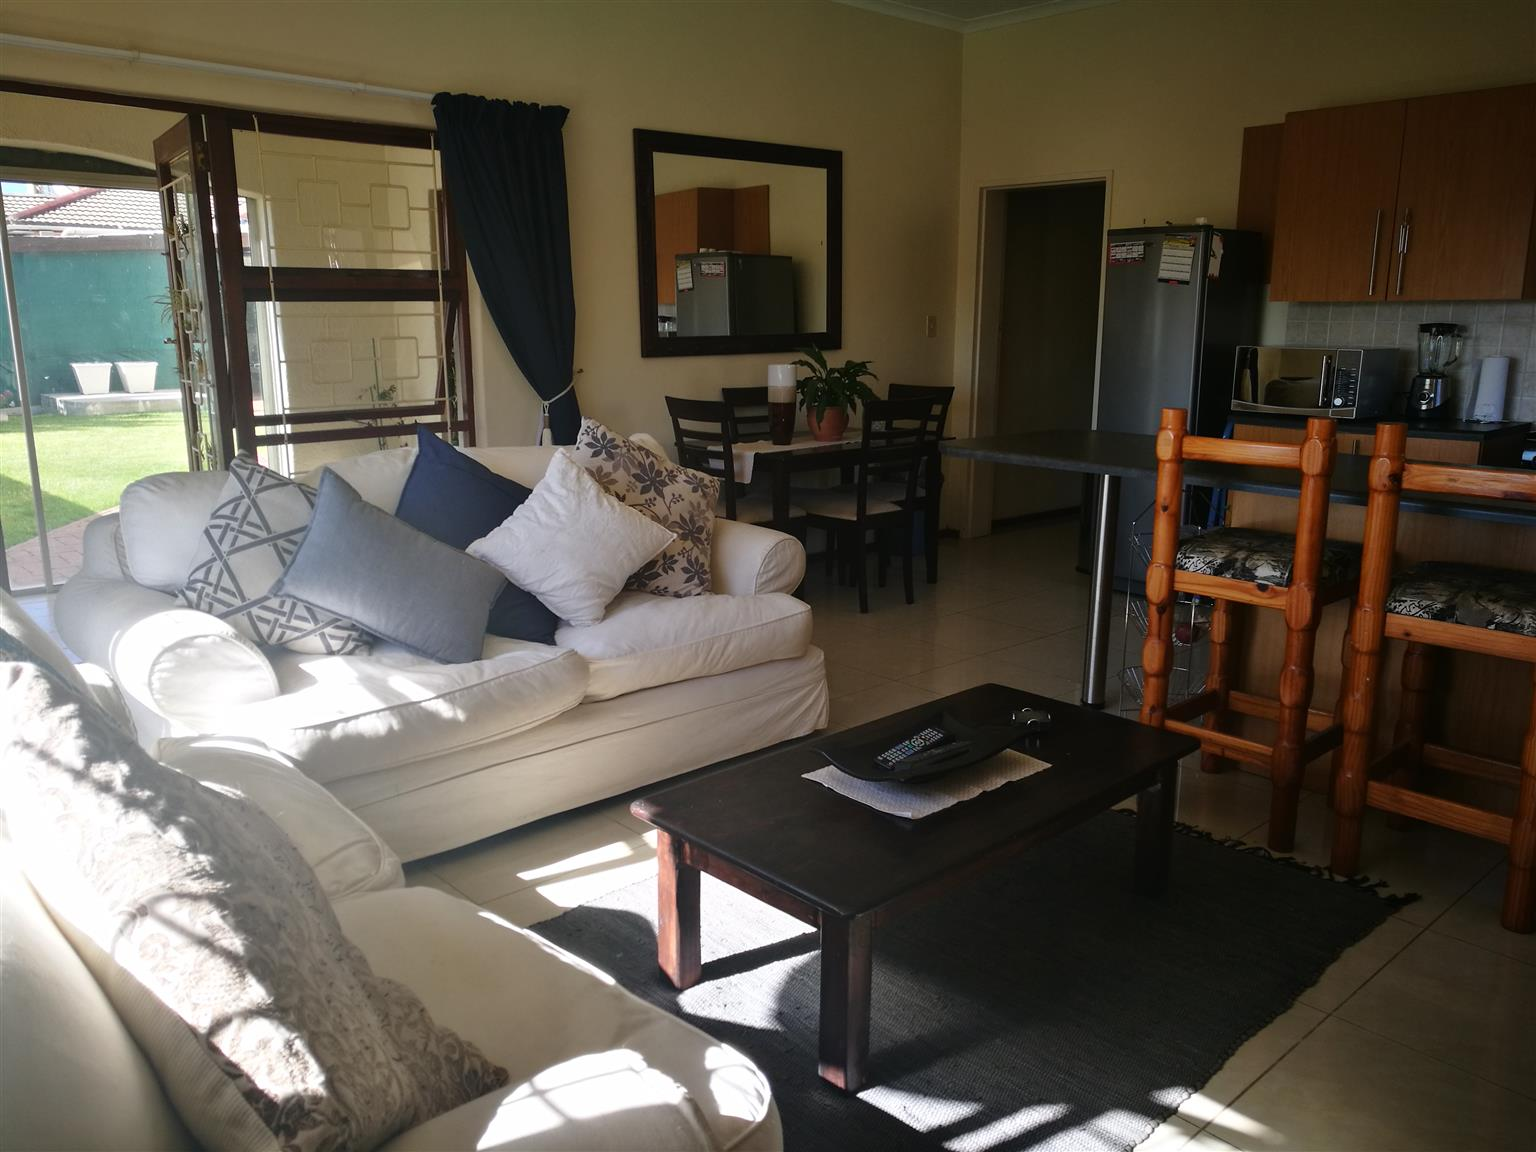 House share - Unfurnished room available for single professional in lovely home in Loevenstein